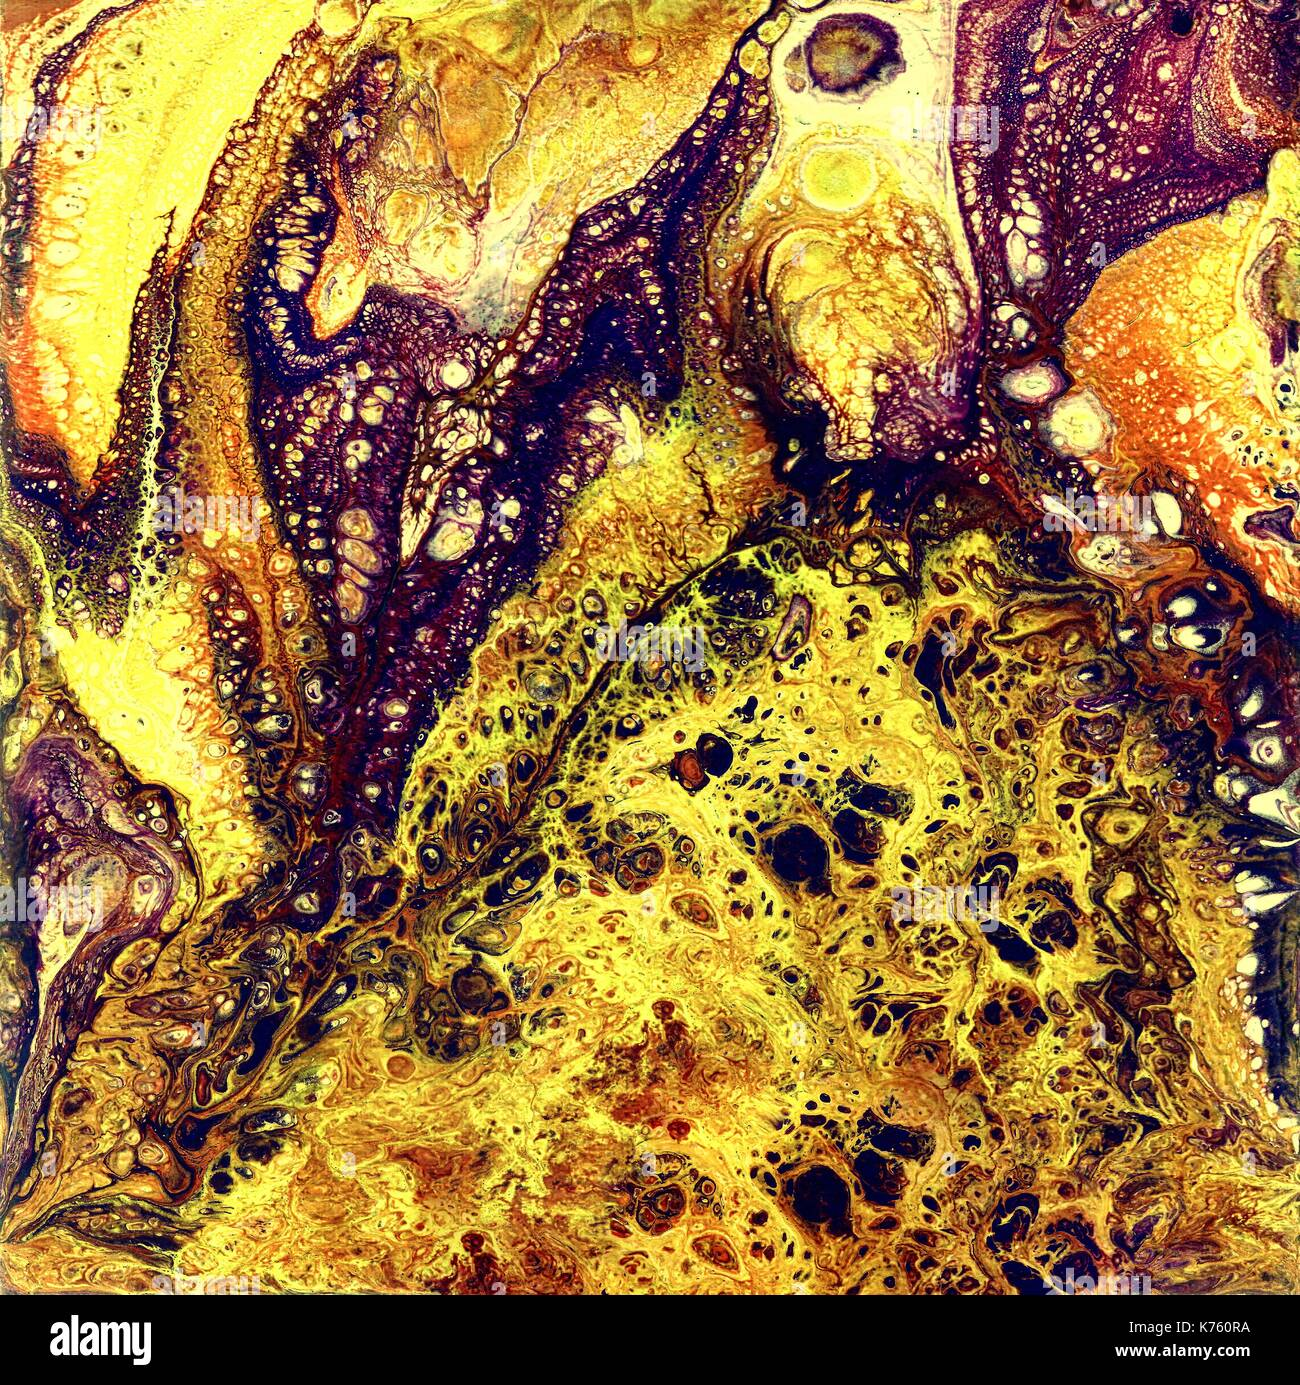 Liguid watercolor and ink abstract gold painting. Wet panted illustration, abstract background and wallpaper. Yellow, gold and magenta colors - Stock Image